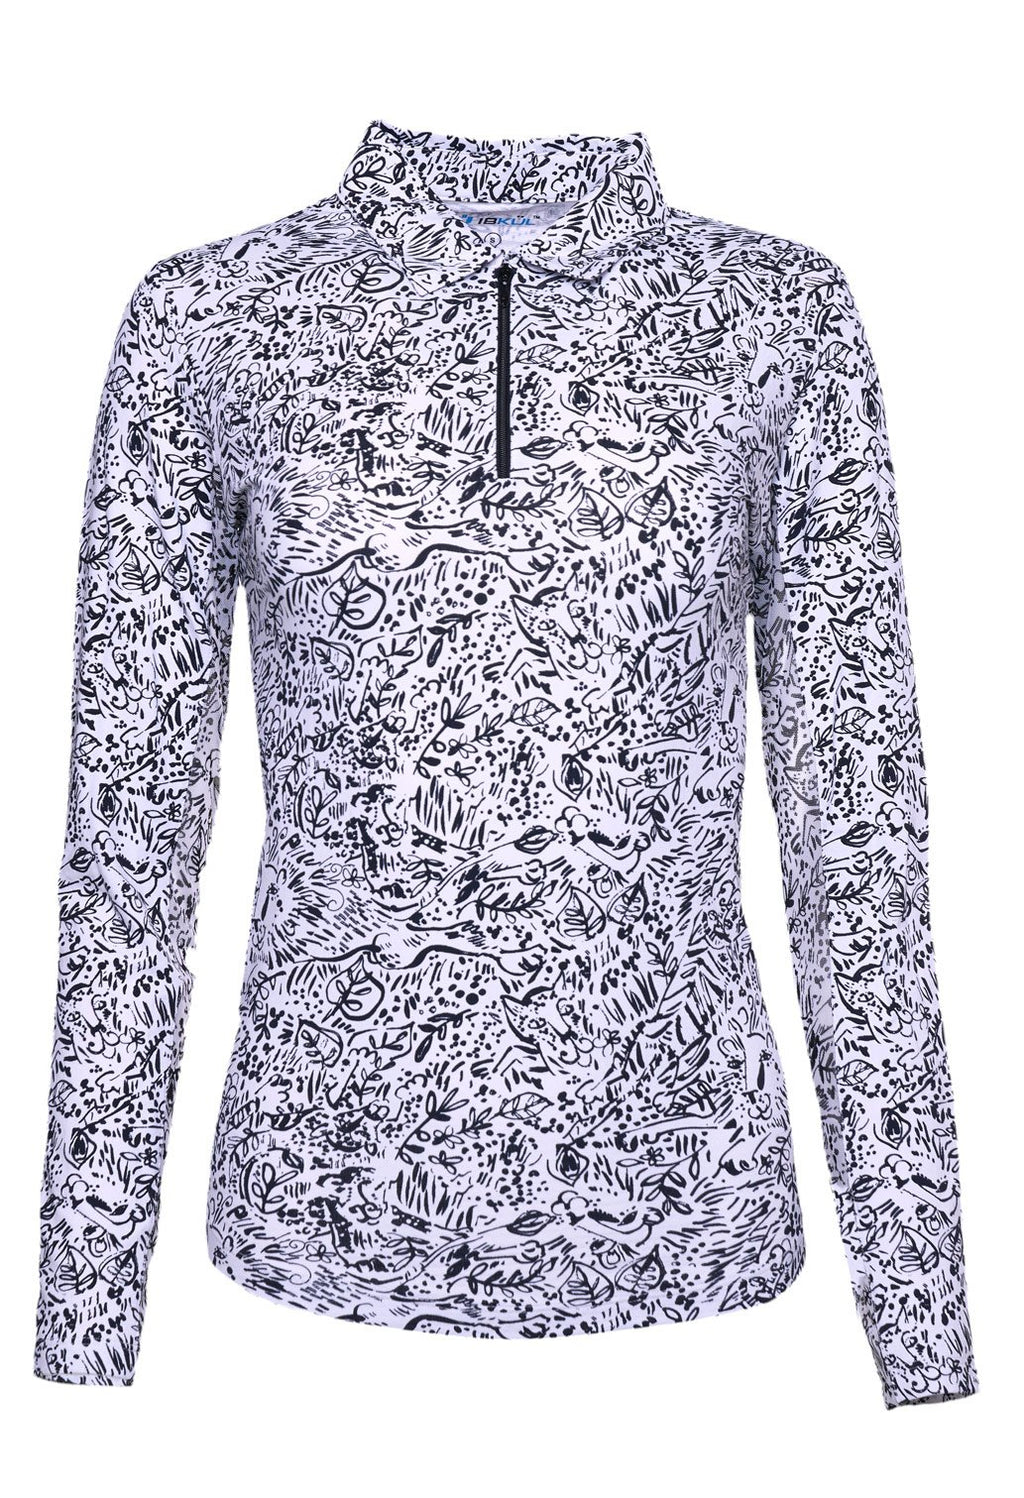 IBKUL Womens Leo Print Long Sleeve Polo